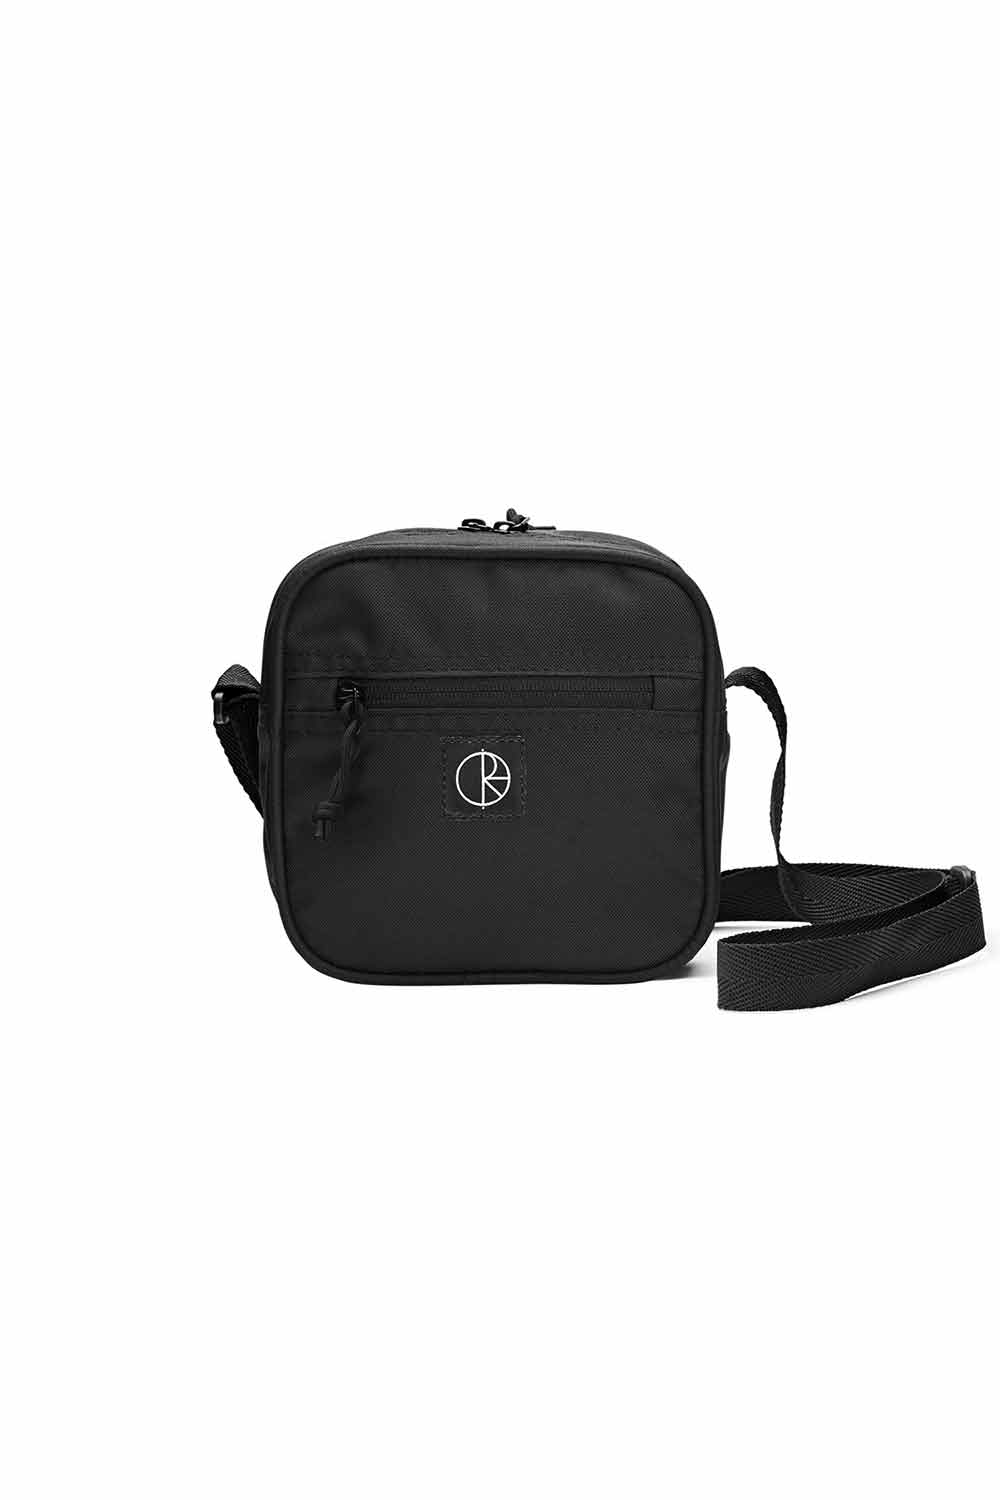 Buy Polar Skate Co Cordura Dealer Bag | Buy Polar Skate Co Online